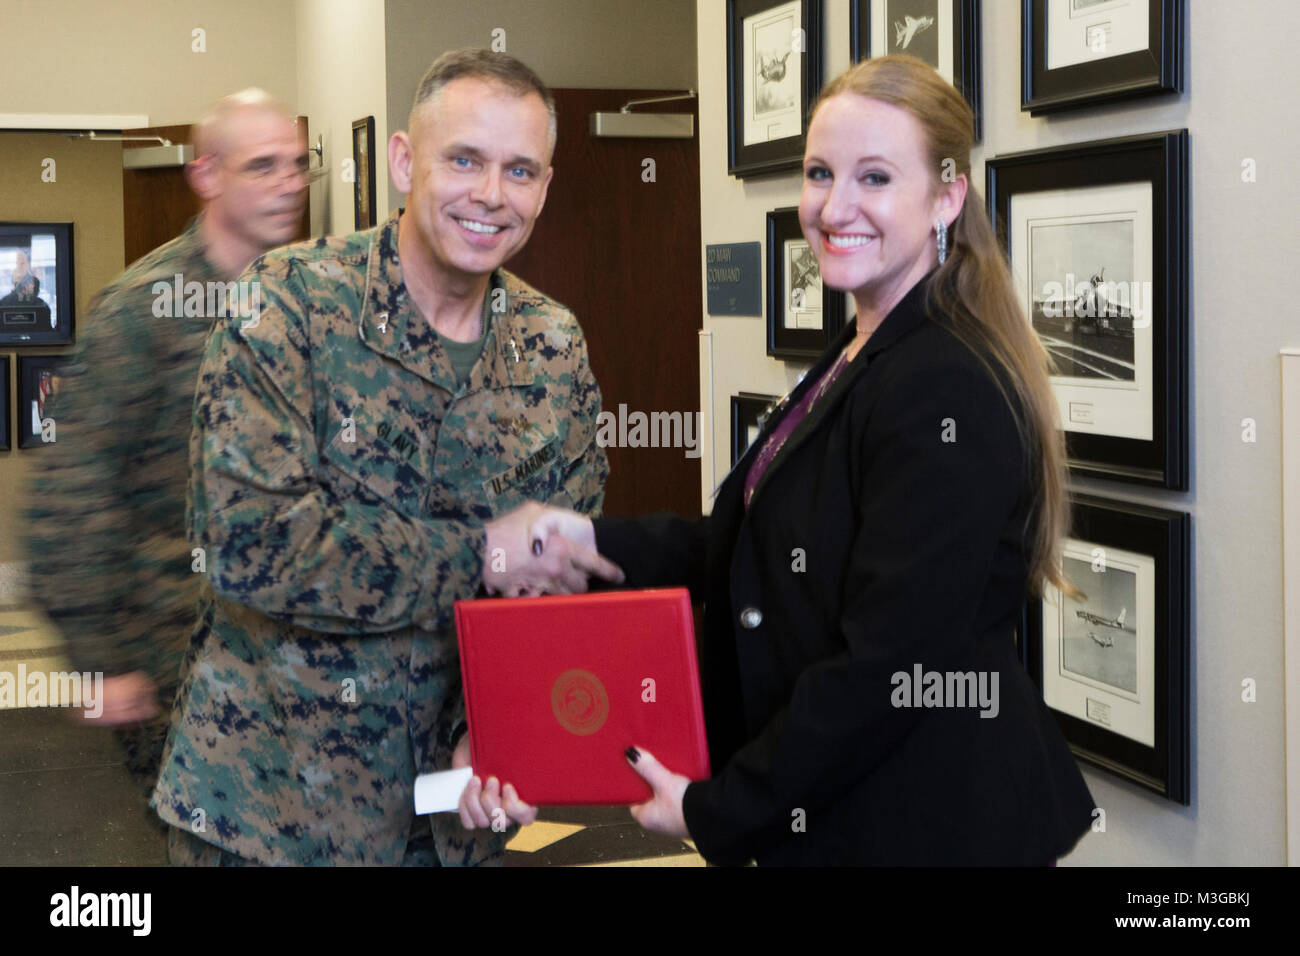 single marine dating site Official site meet military singles locally and worldwide for dating, friendship, love and relationships at usmilitarysinglescom army, air force, navy, and marine corps singles profiles are all here.